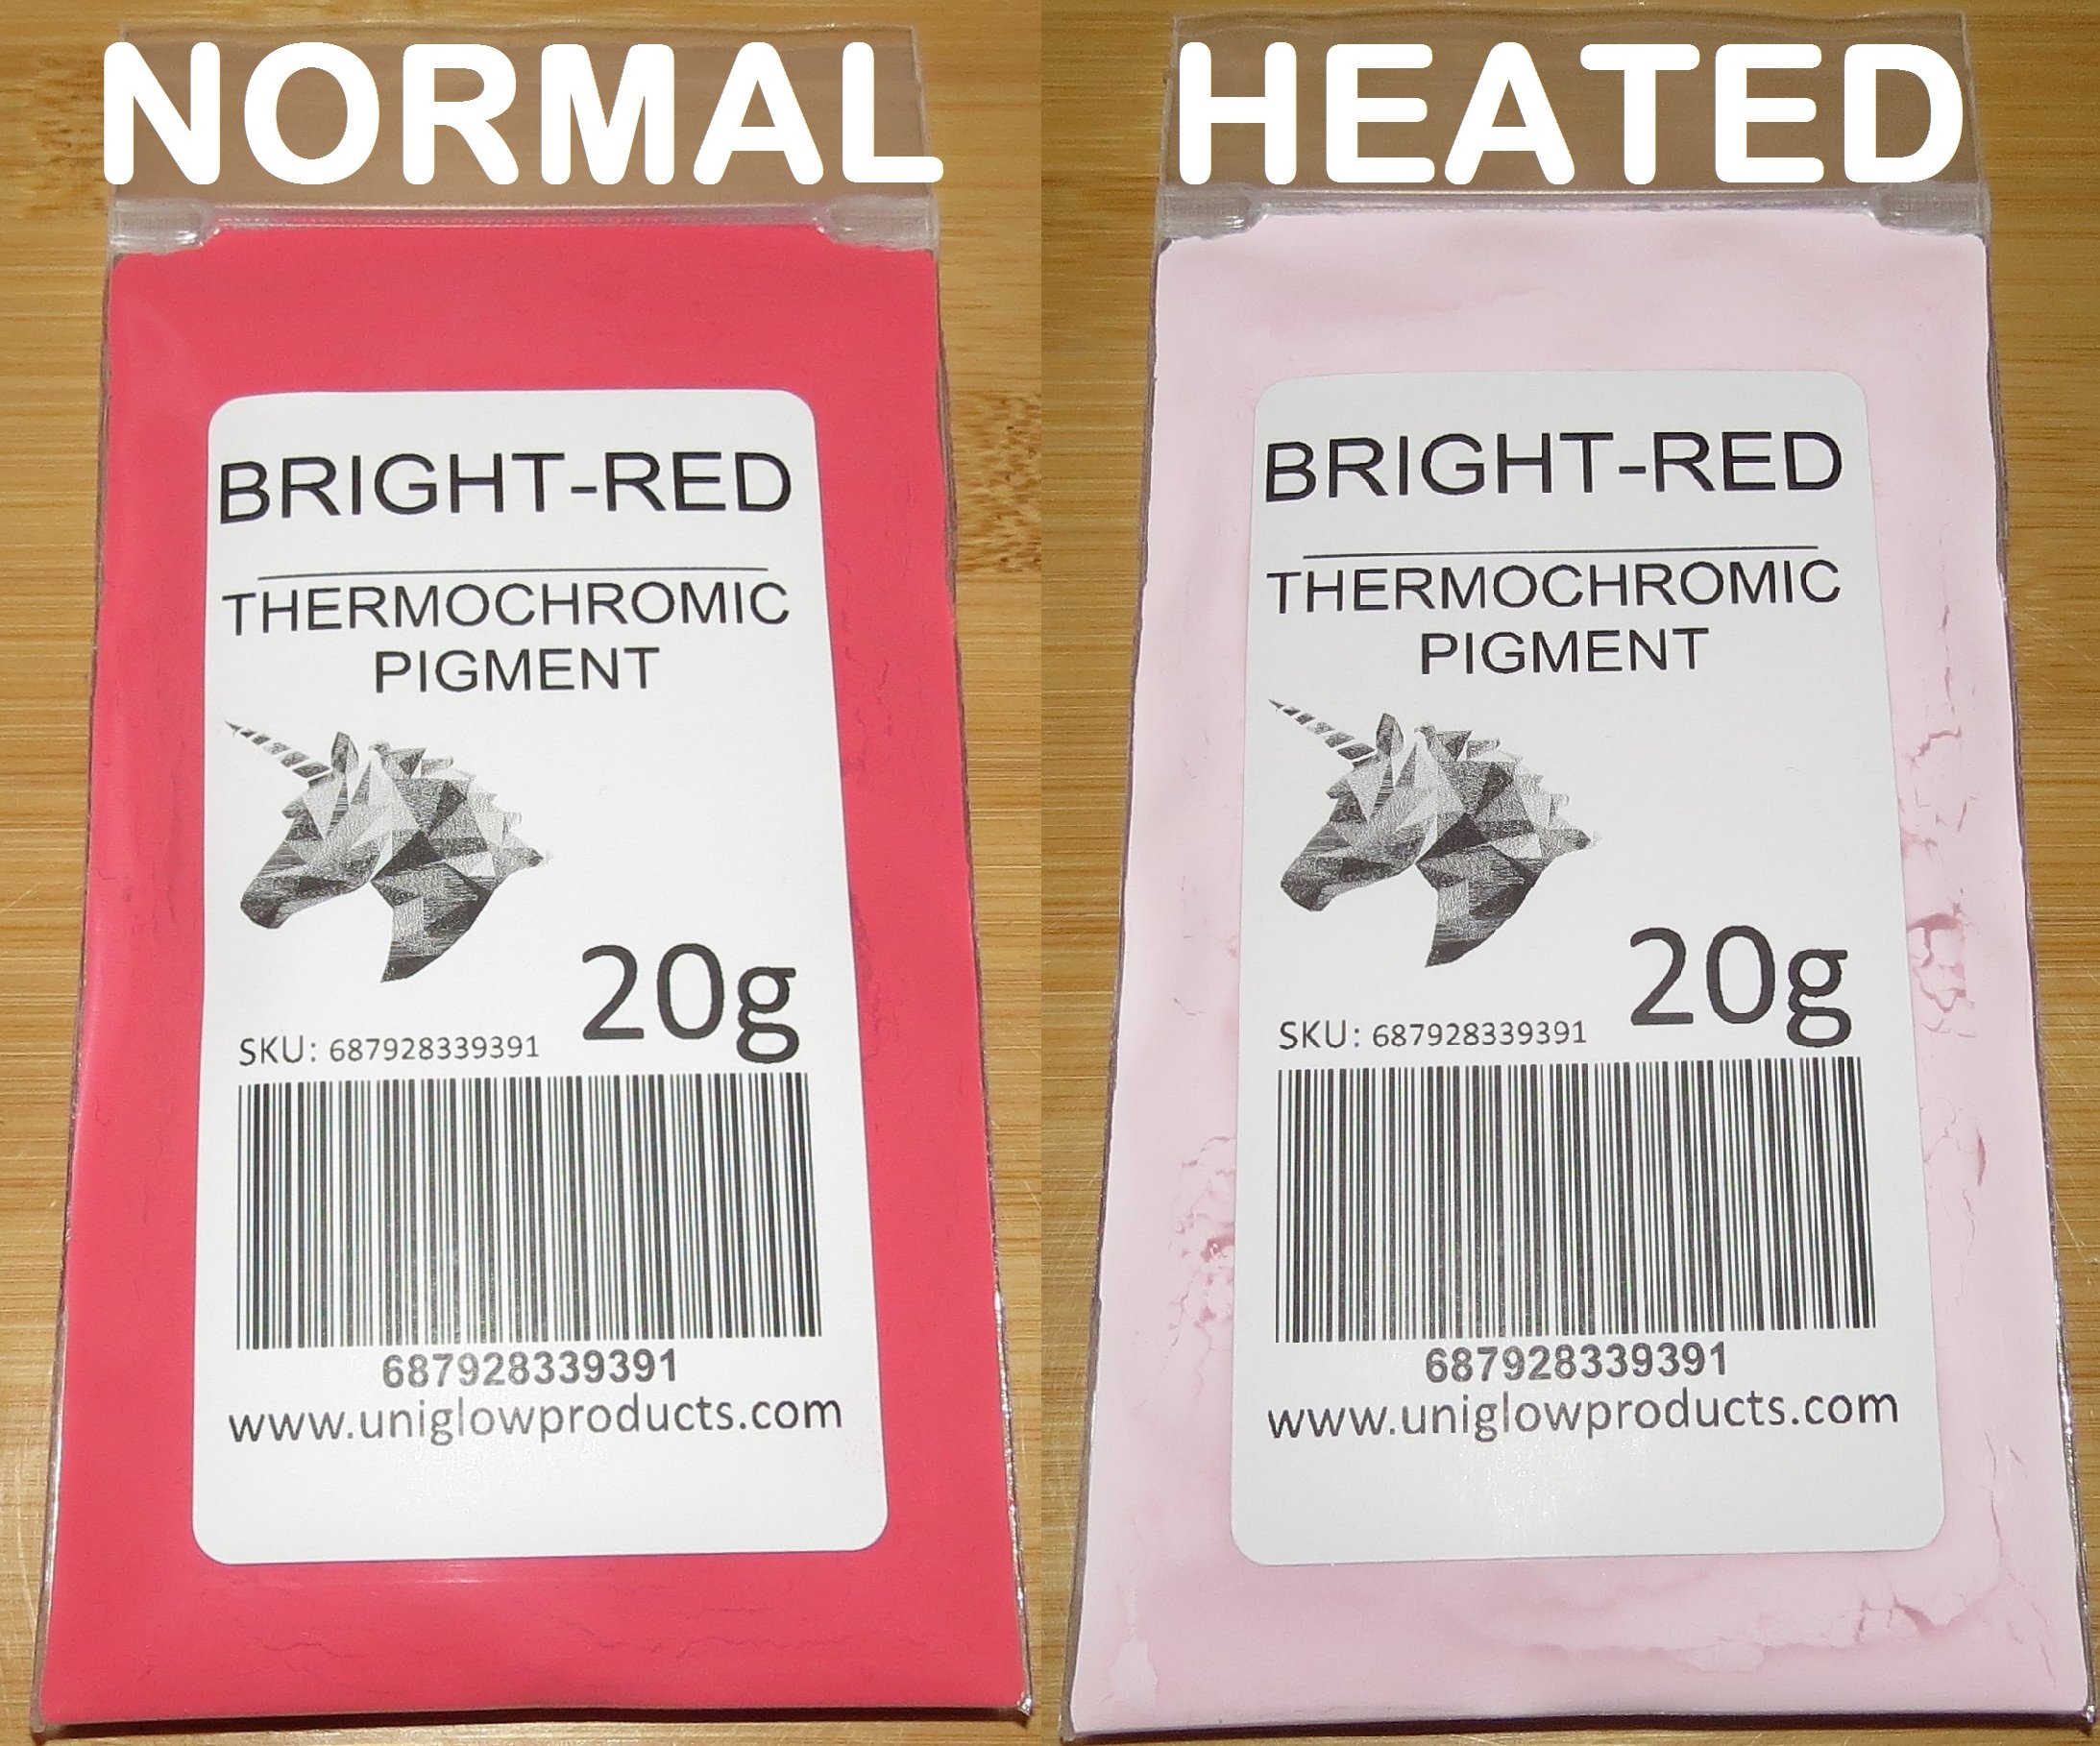 20g of Thermochromic Temperature Activated Pigment - Bright Red. Multiple Colors - Heat Sensitive Color Changing Powder for Paint, Nail Polish, Ink, Screen Printing, Fabric Art, Ceramics, and More.